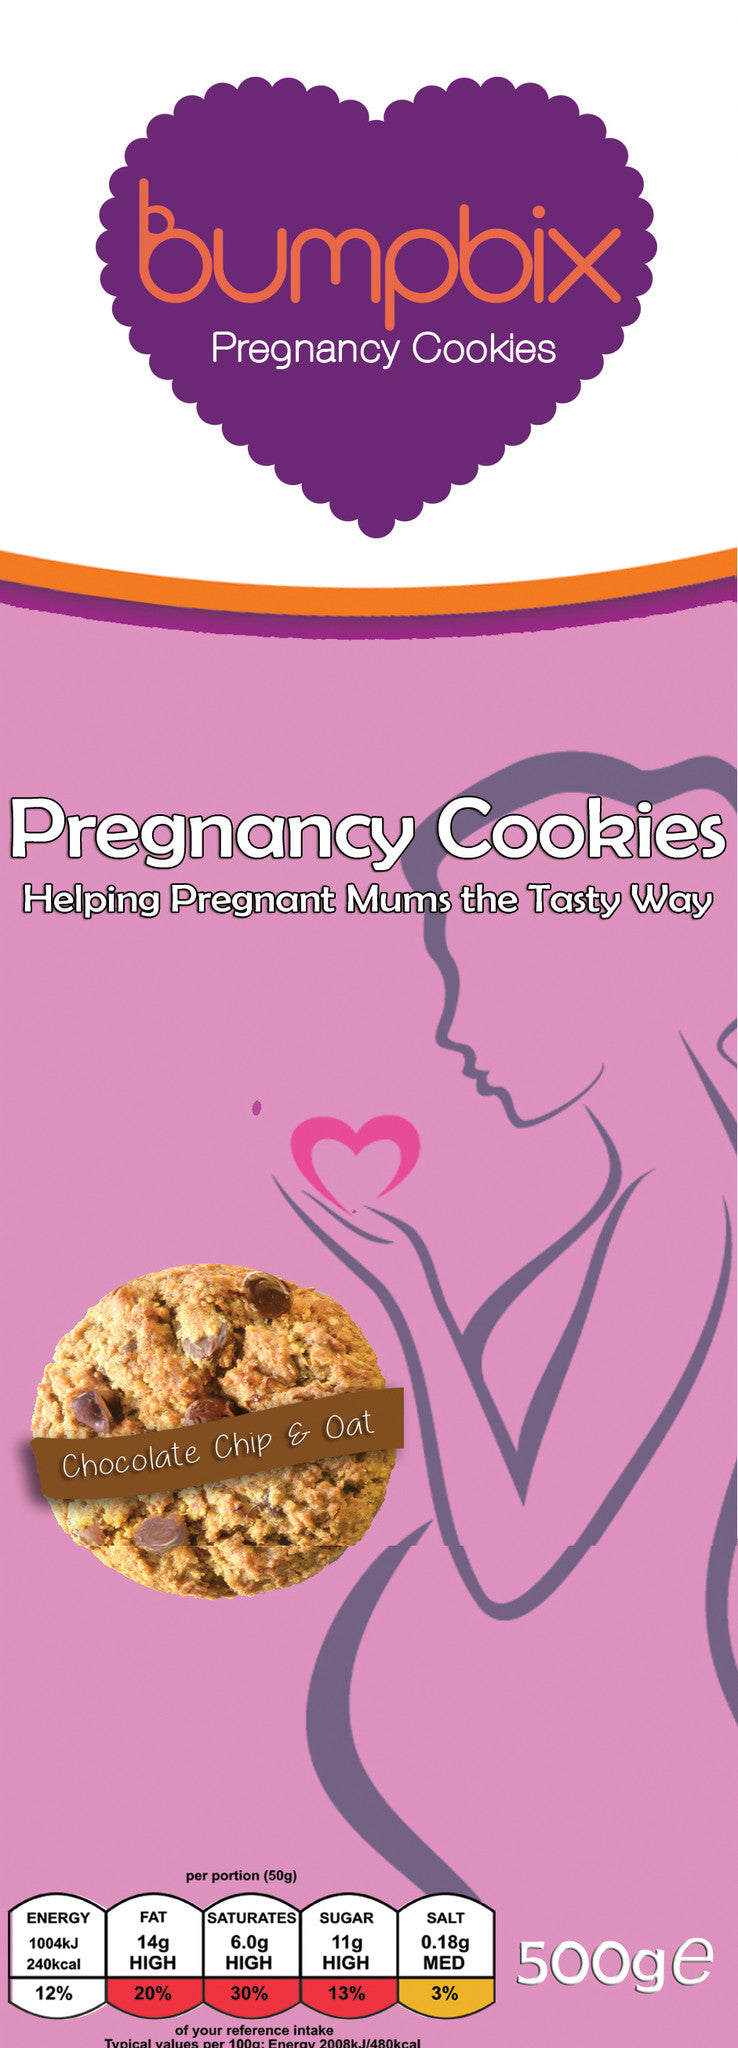 NEW!  Bumpbix Pregnancy Cookies